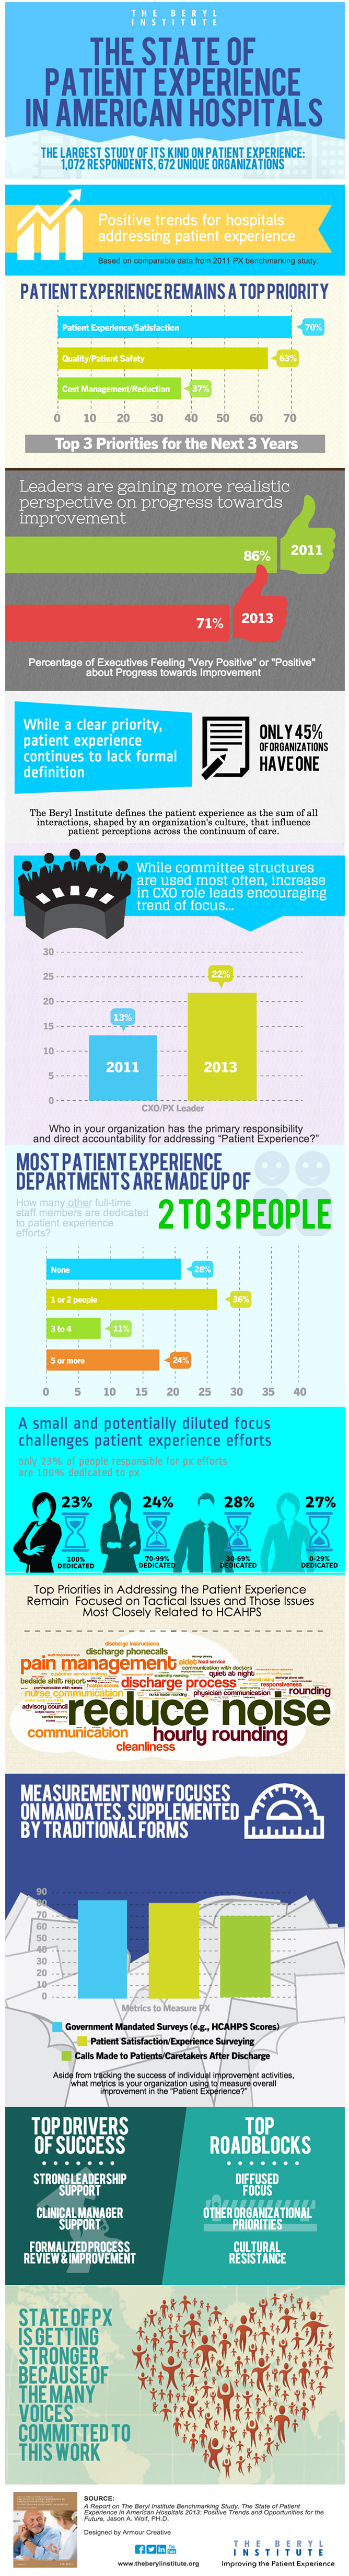 The State of Patient Experience